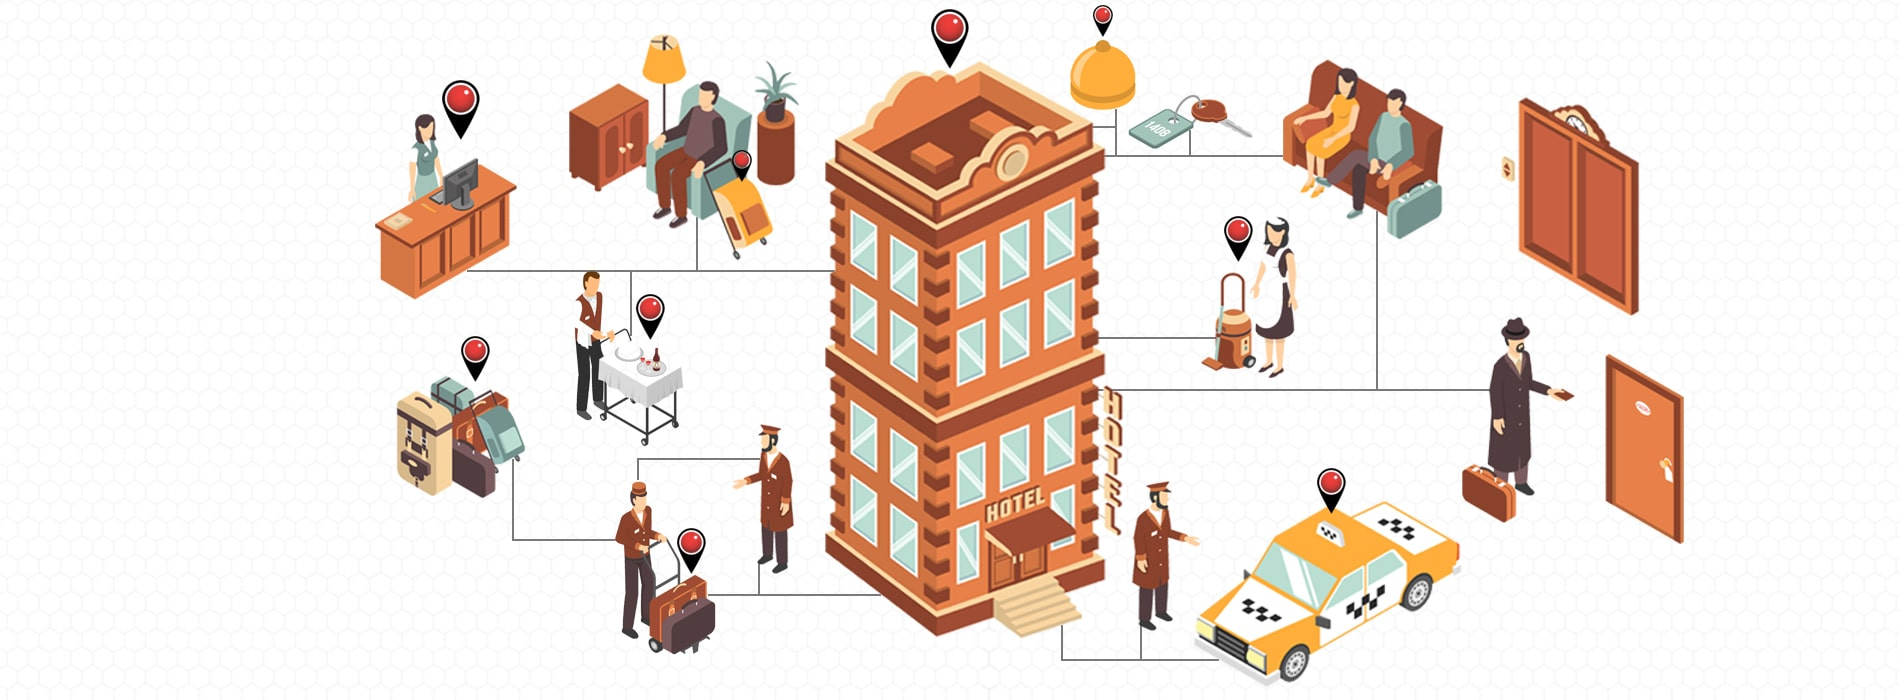 IoT Solutions for Hospitality Industry